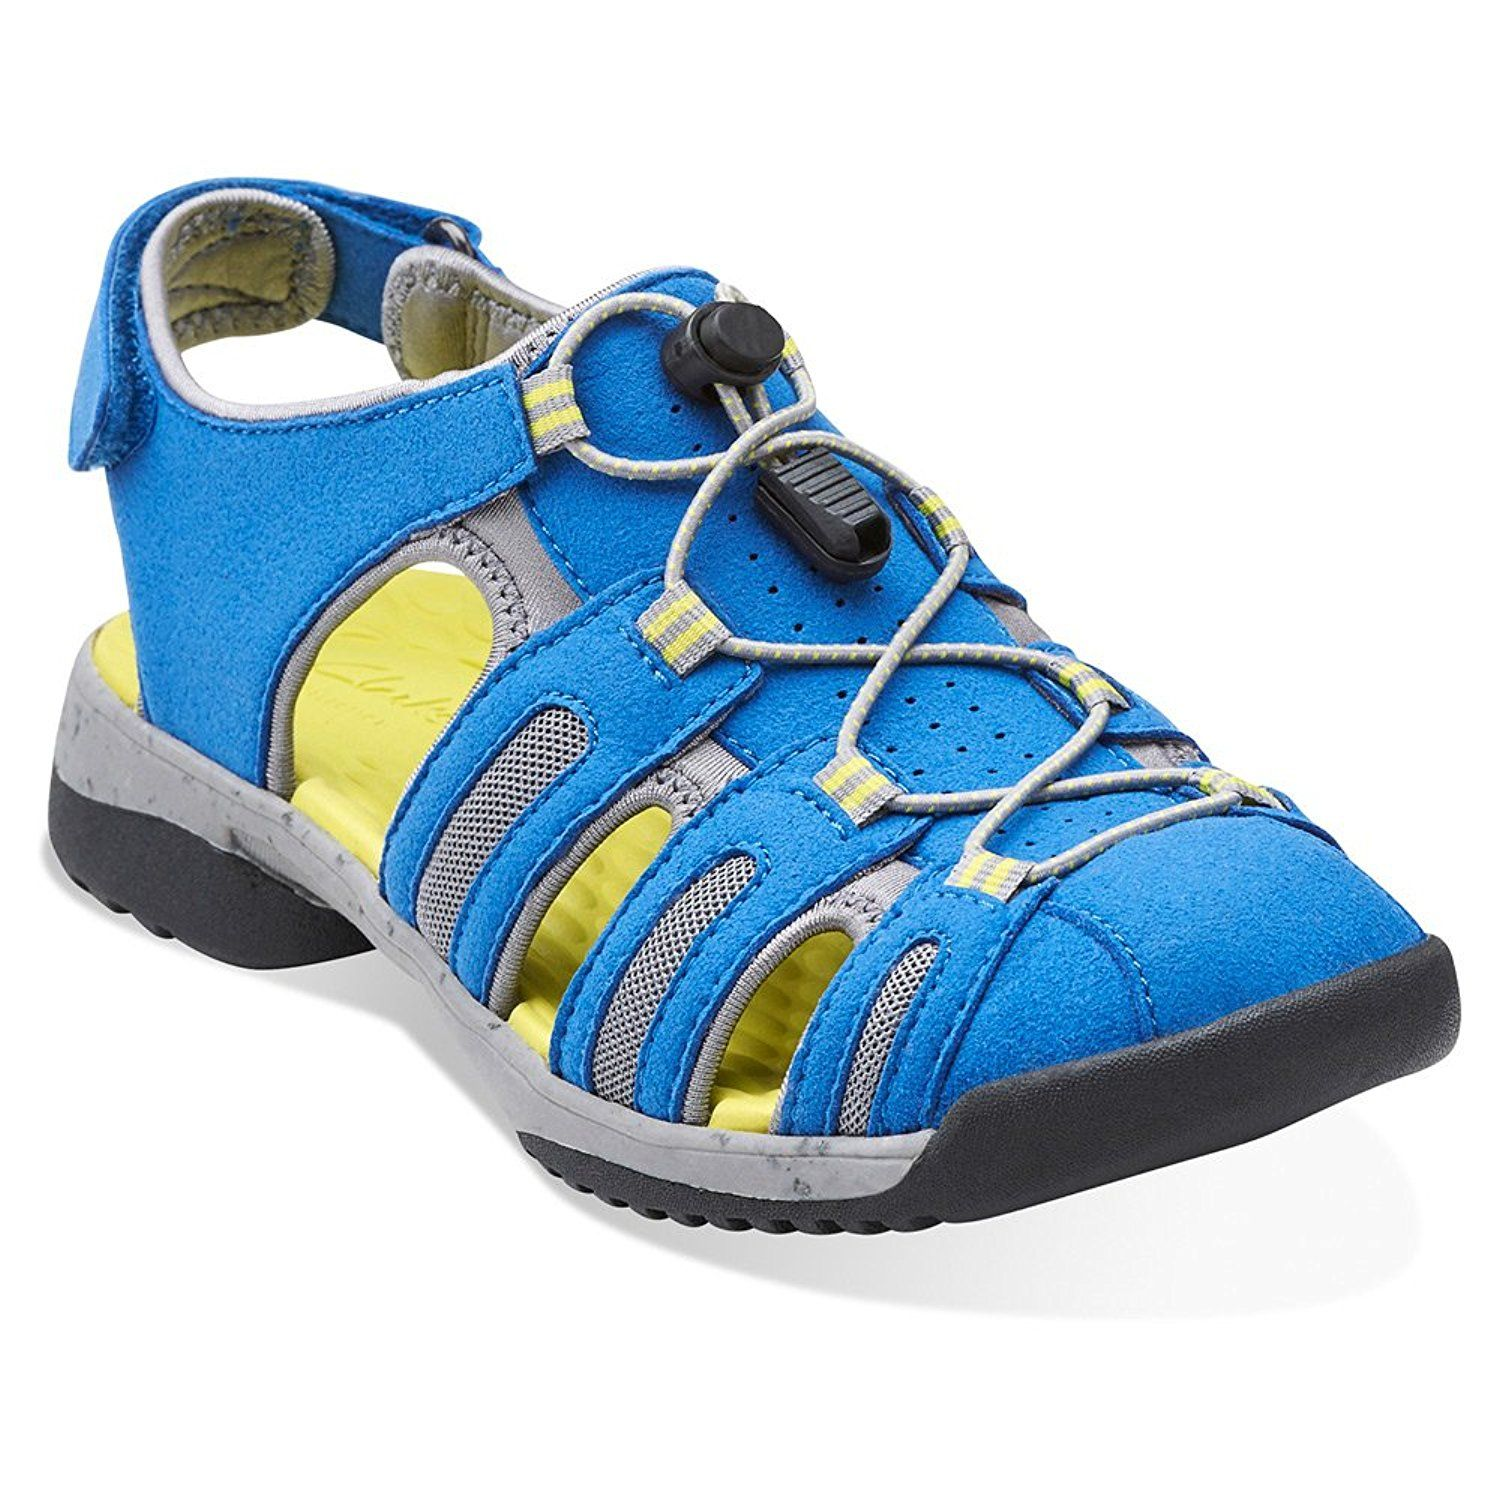 17bbaec5199 Clarks Tuvia Melon Womens Blue Sandal    Find out more details by clicking  the image   Clarks sandals